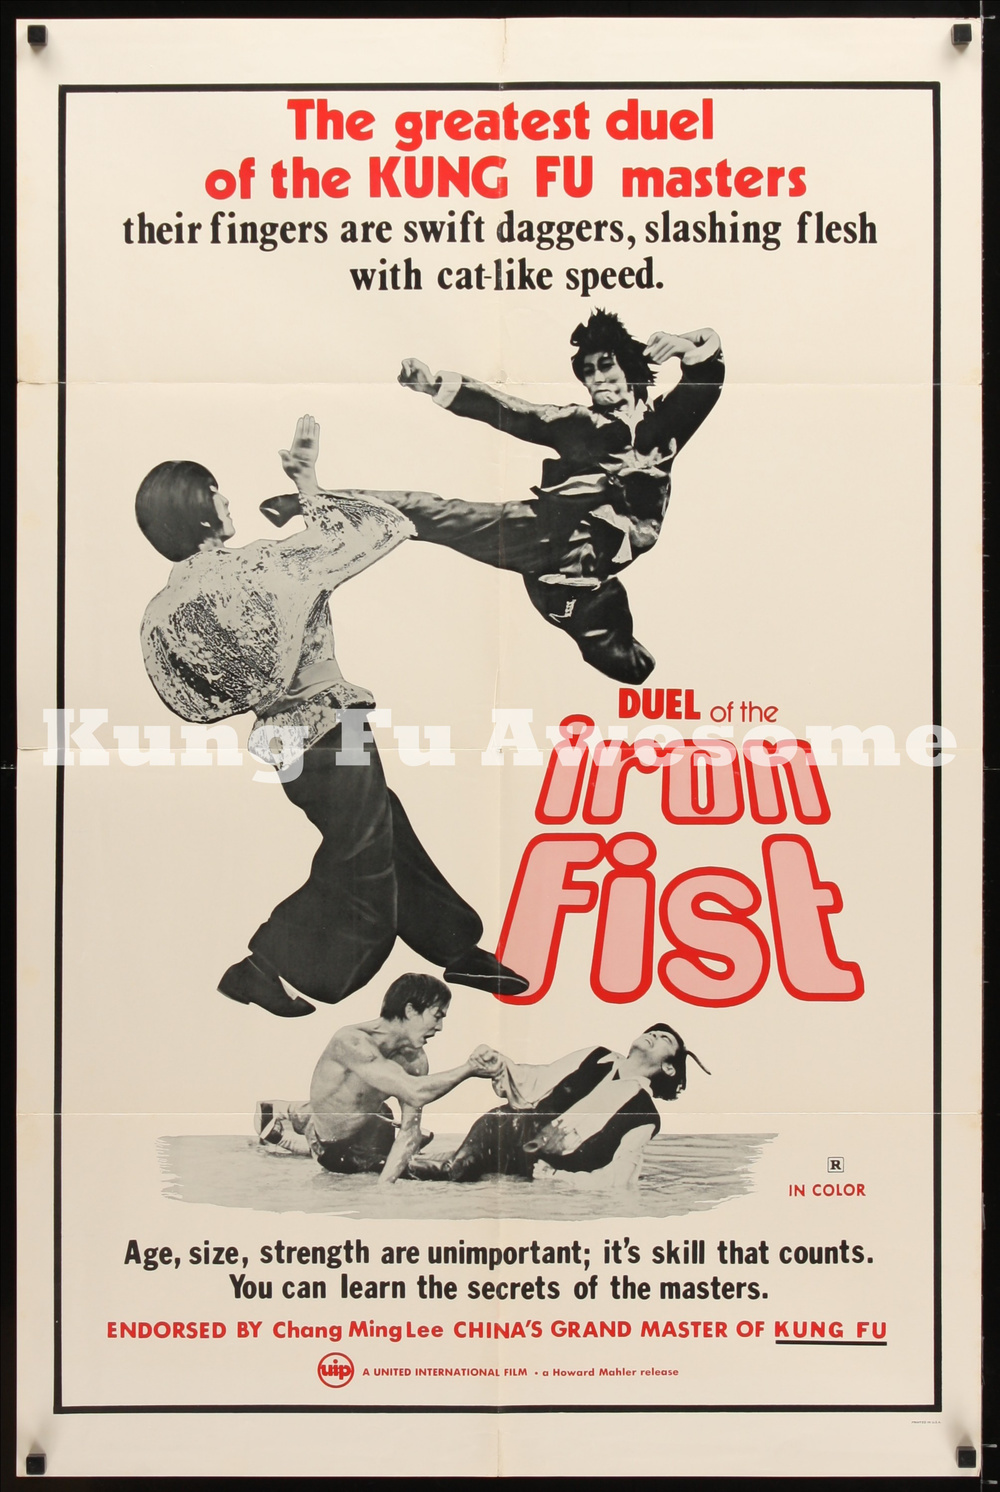 duel_of_the_iron_fist_MF00110_L.jpg